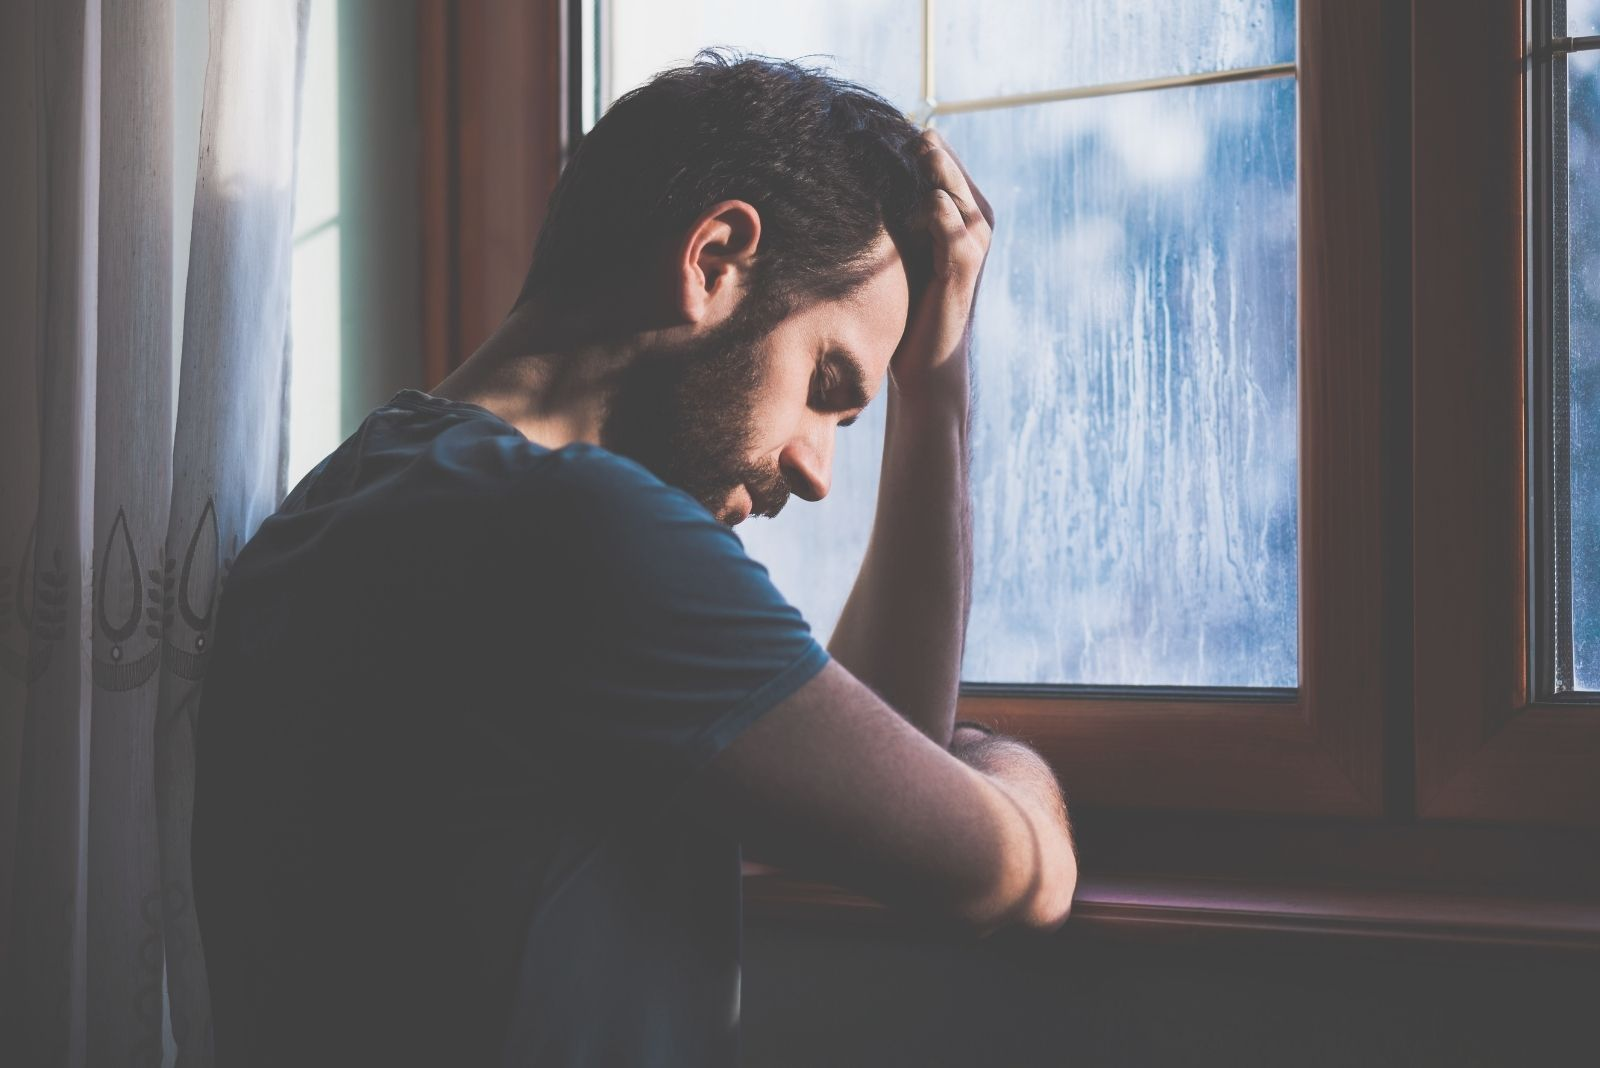 sad young man in regret in the window of a dark room